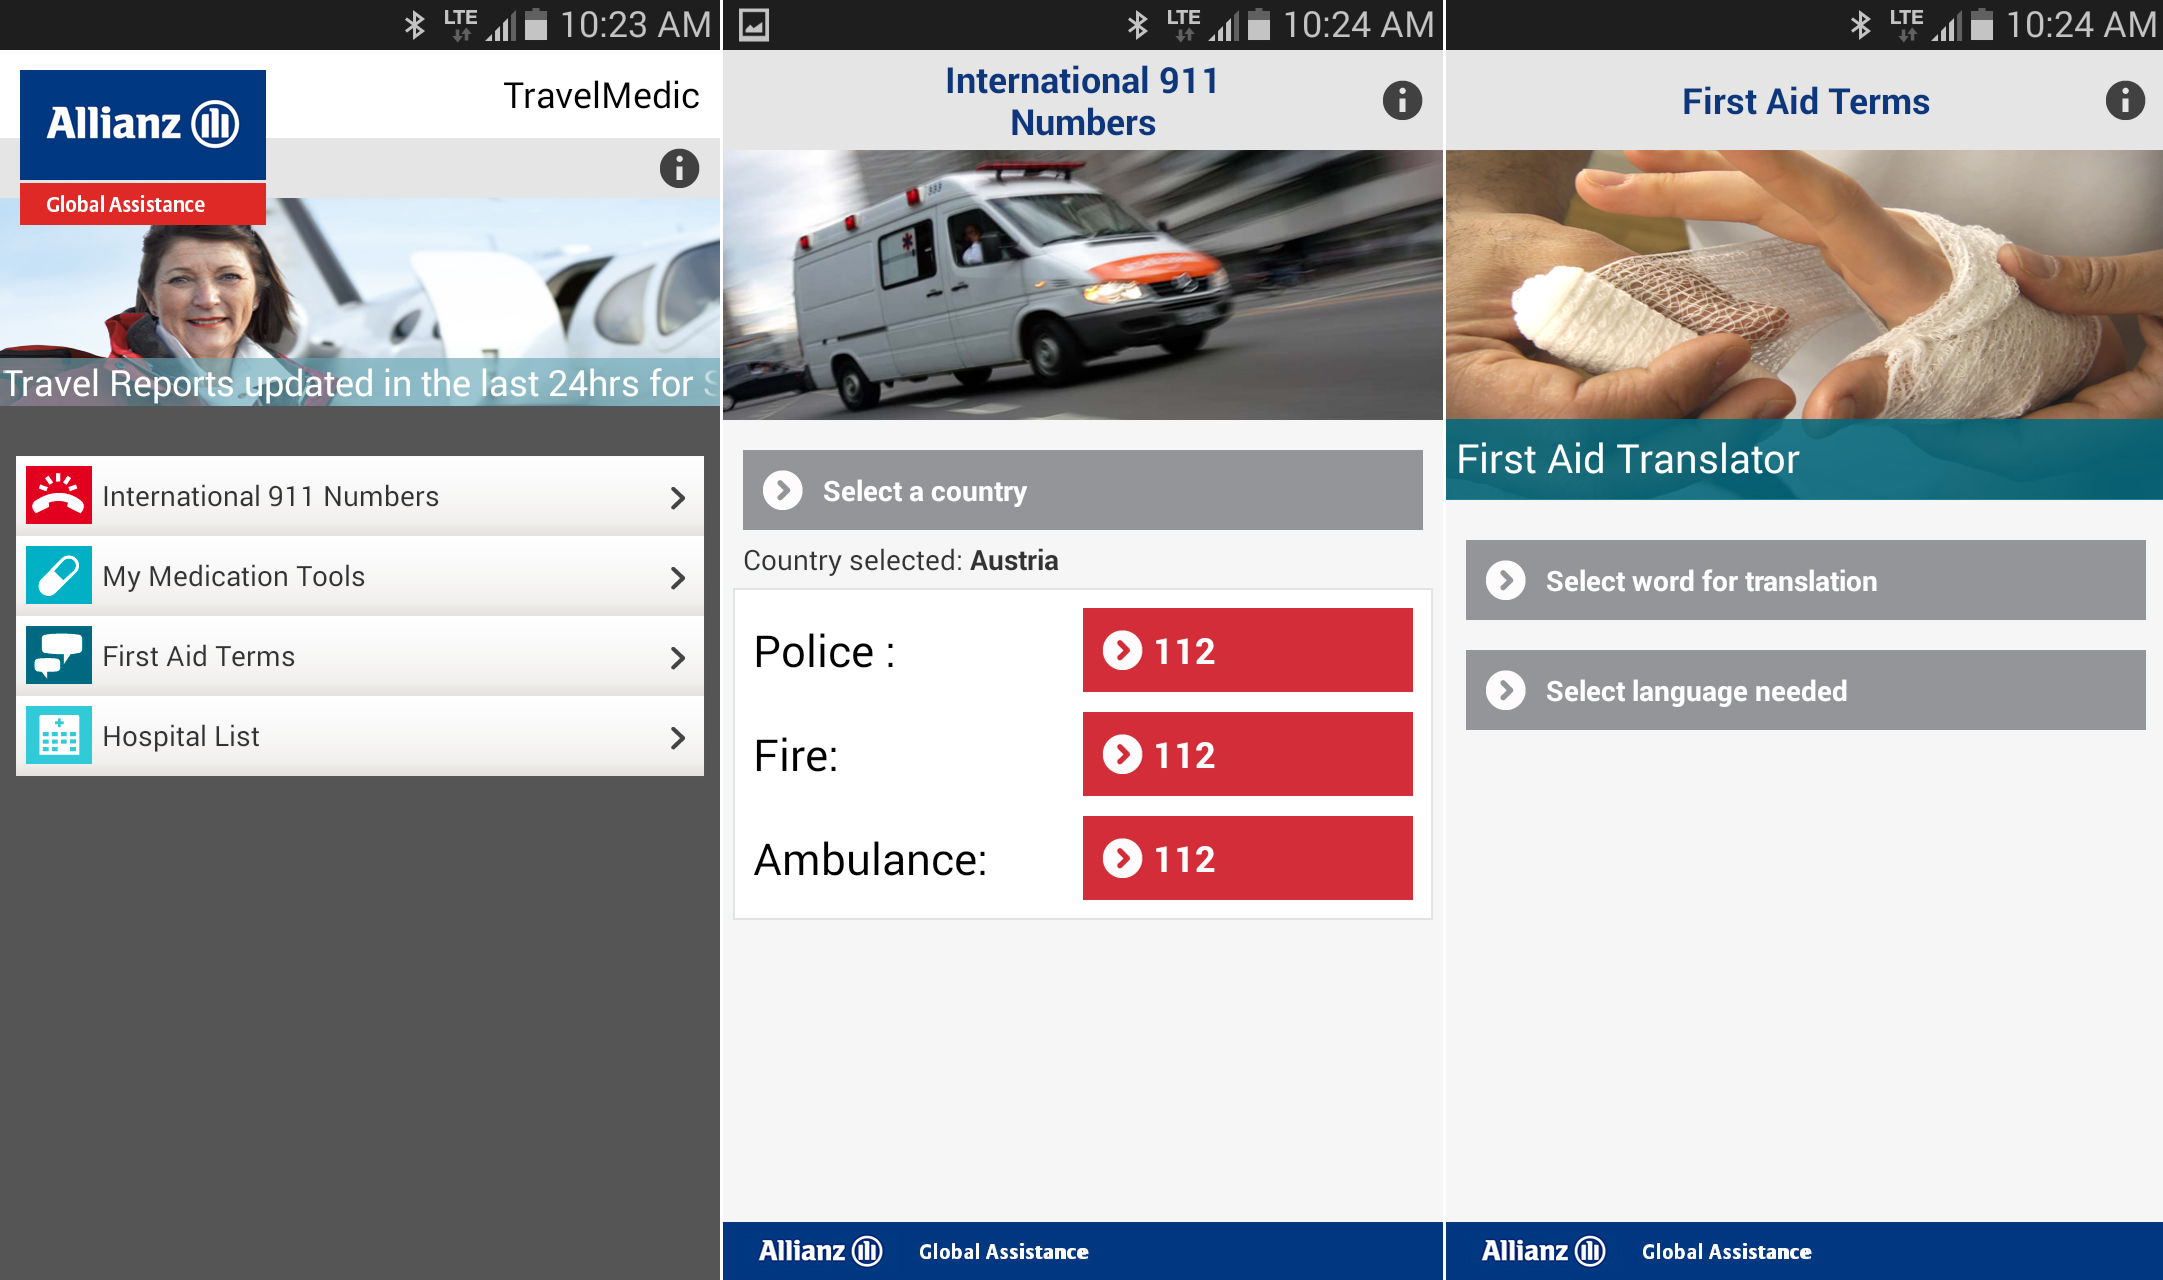 Allianz Global Assistance offers up TravelMedic mobile app